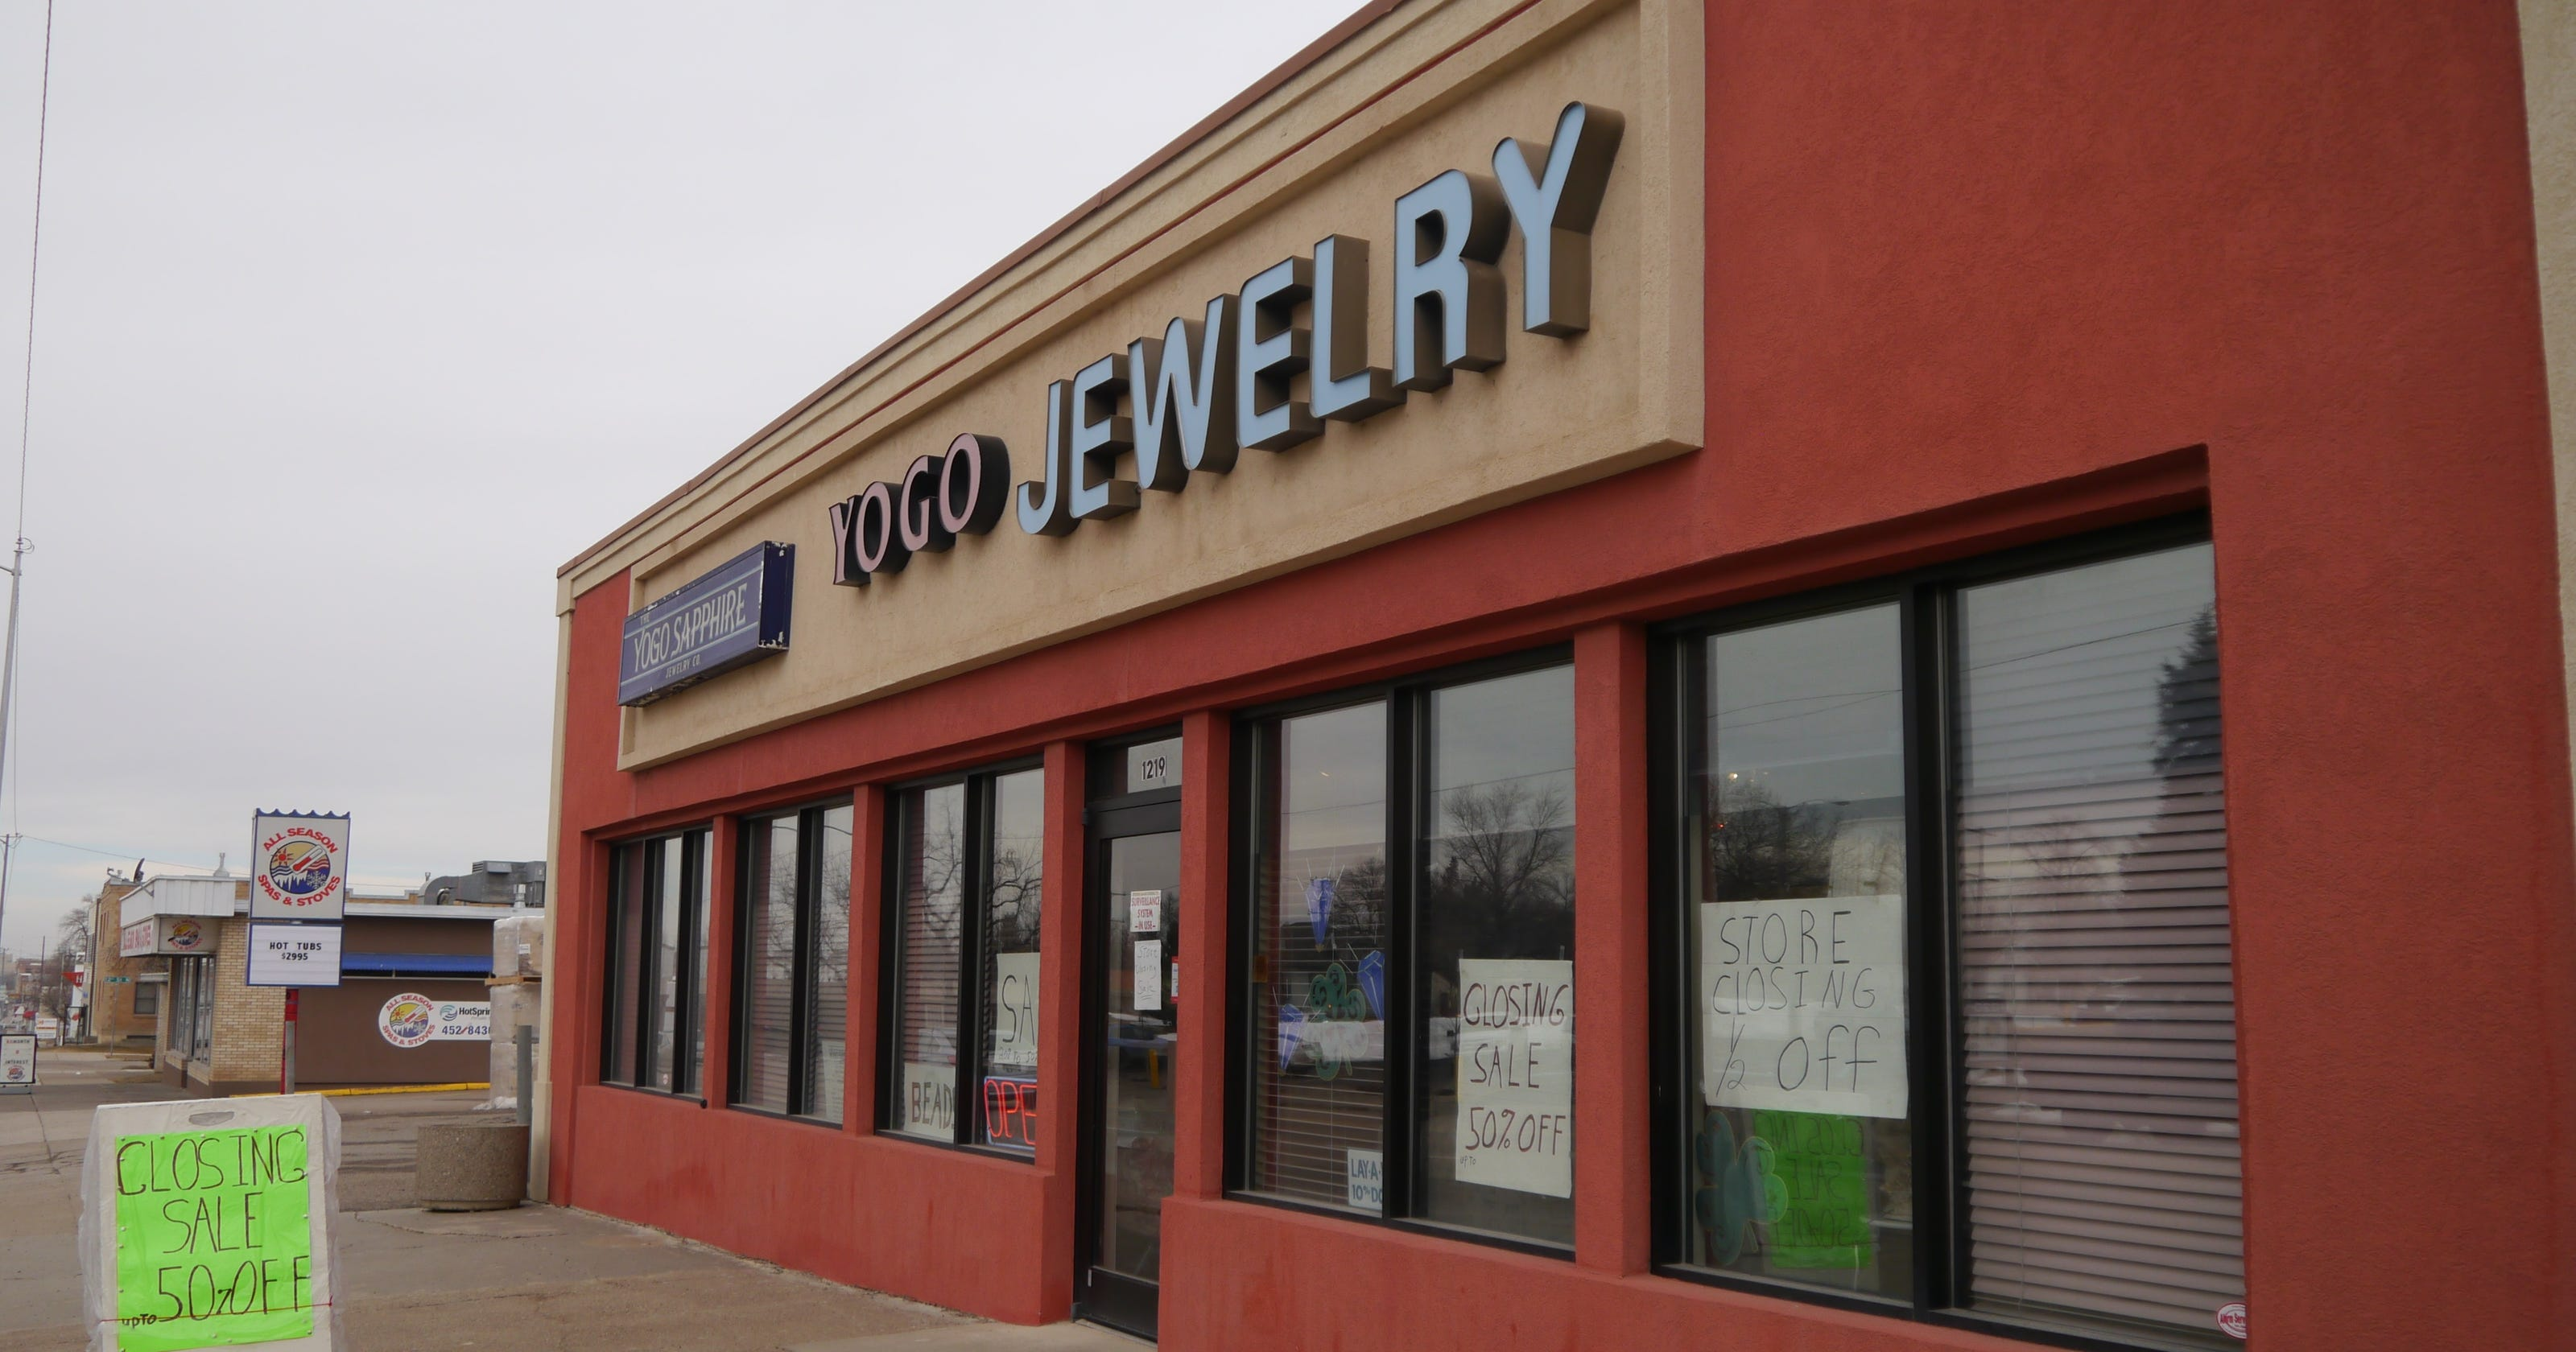 Yogo Sapphire Jewelry in Great Falls is closing